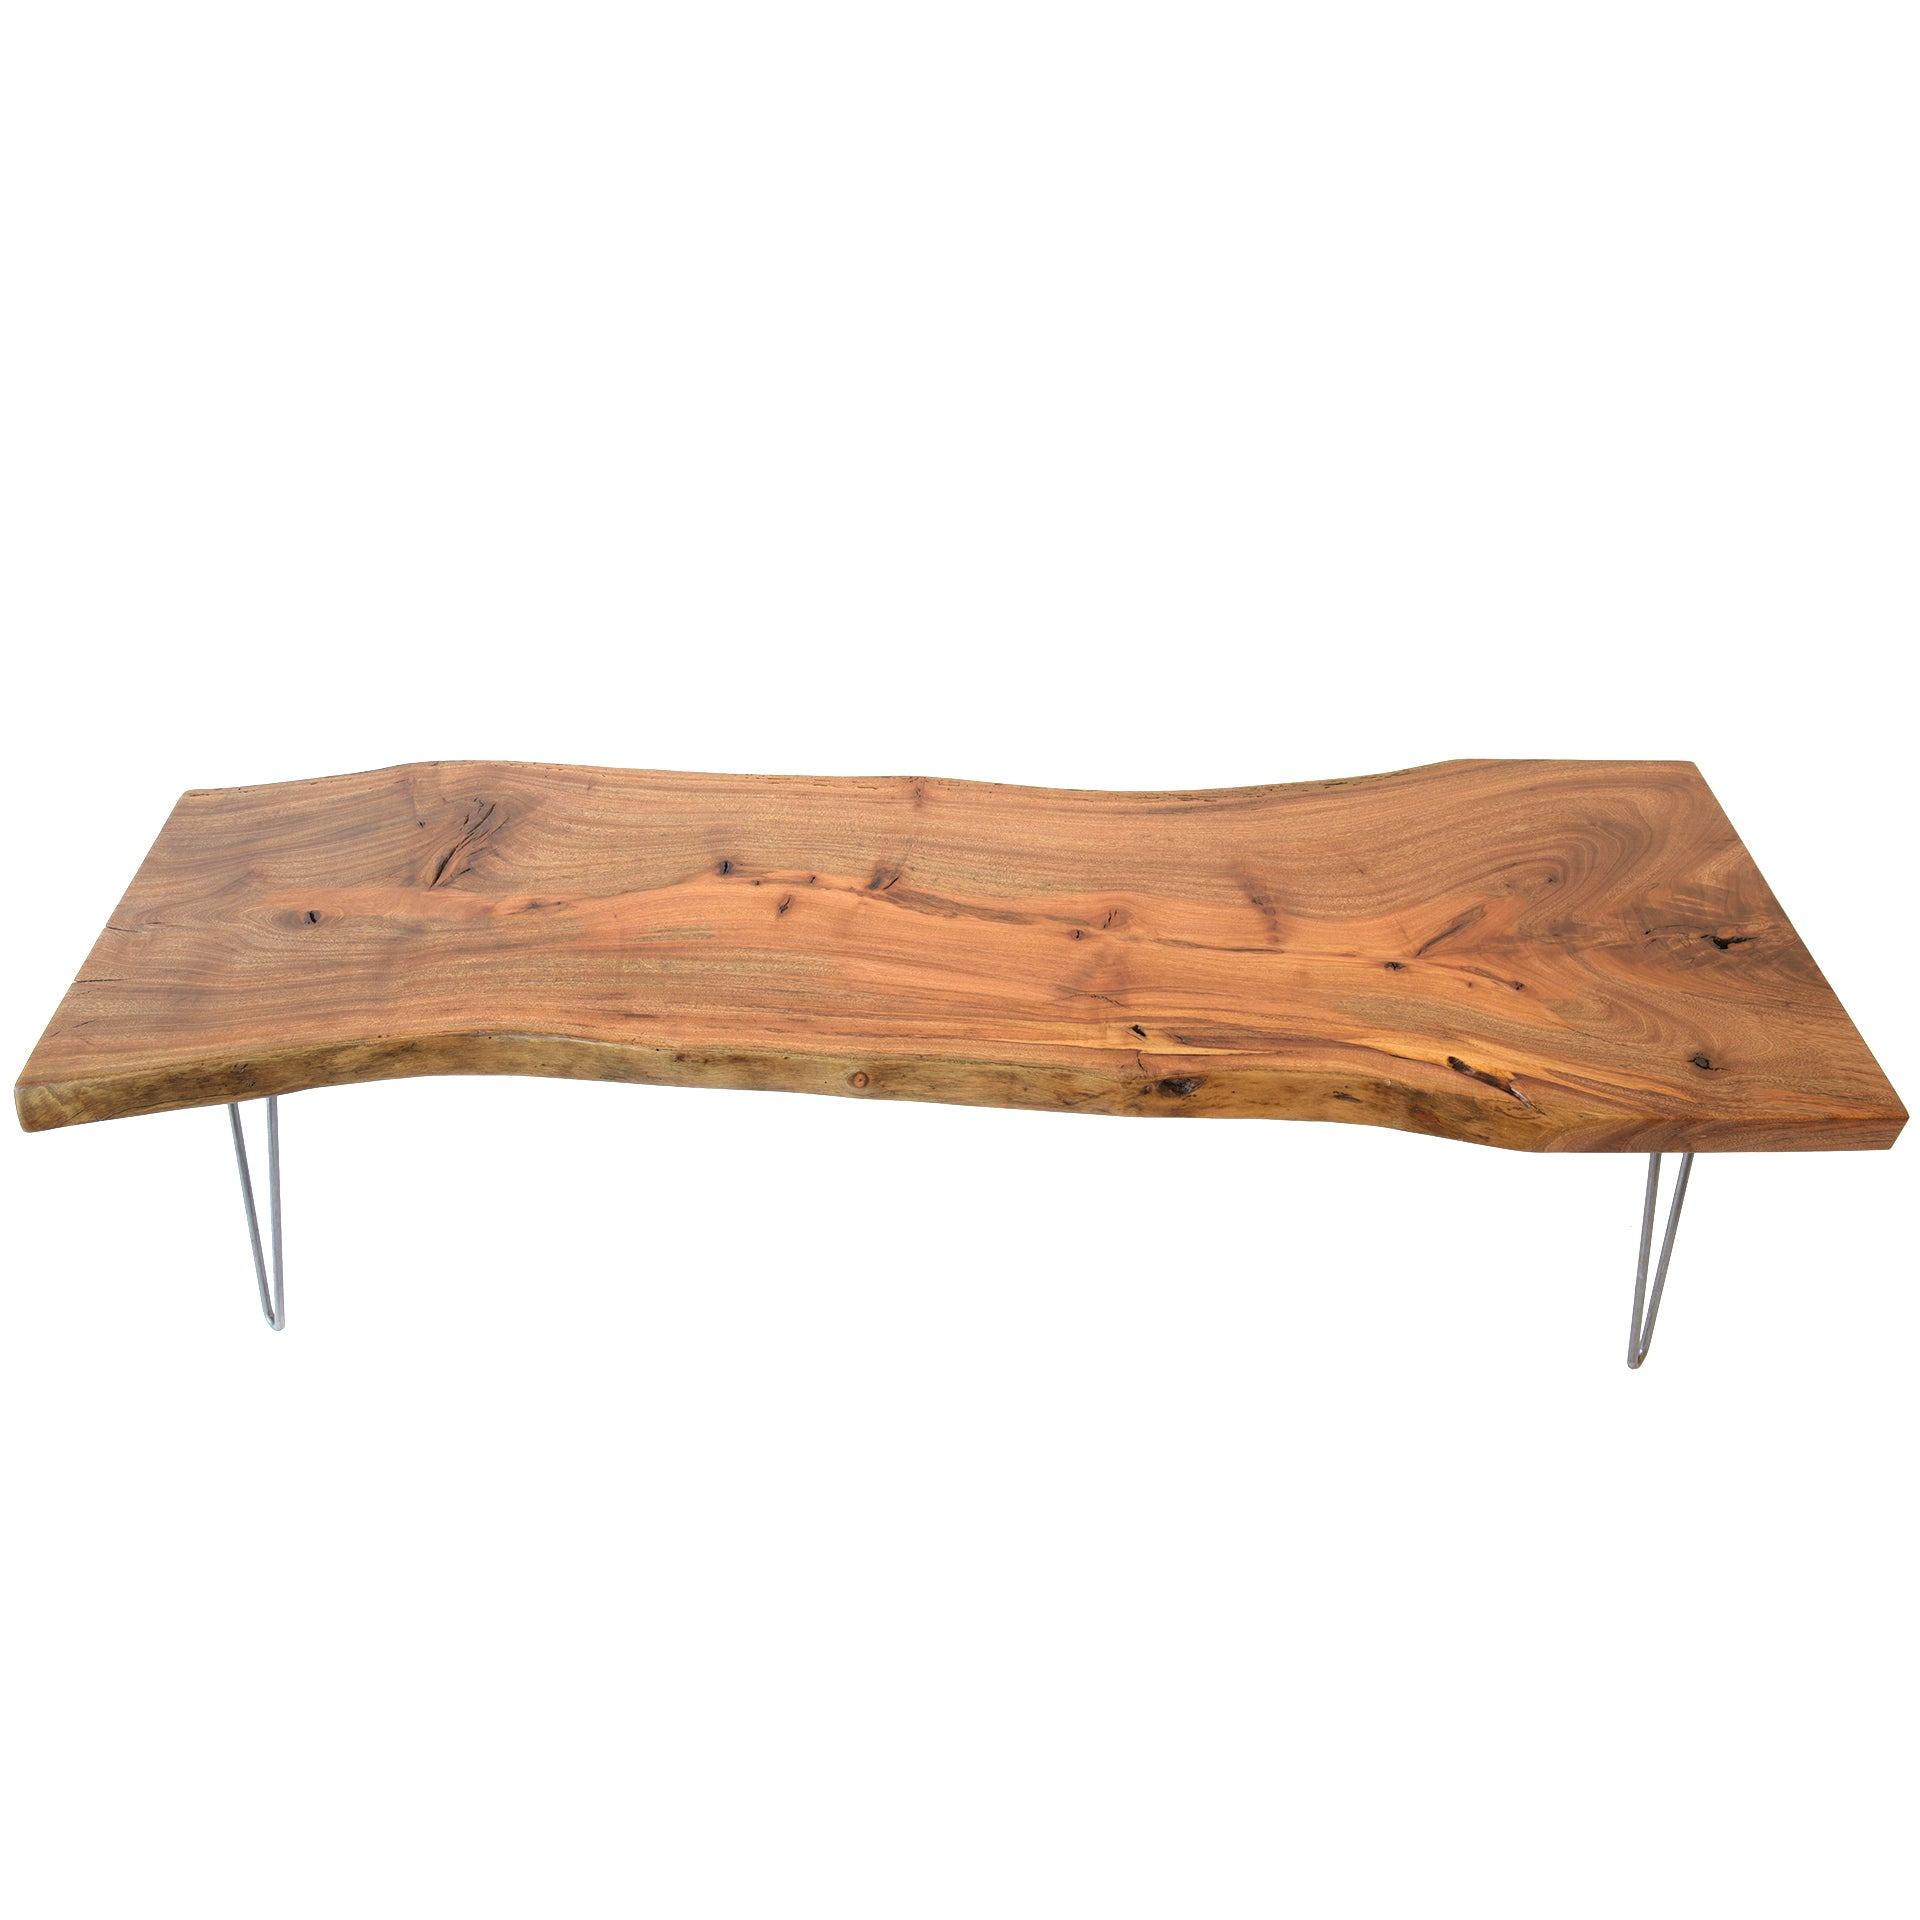 Superb Natural Light Live Edge Solid Wood Slab Tree Shape Coffee Table Creativecarmelina Interior Chair Design Creativecarmelinacom